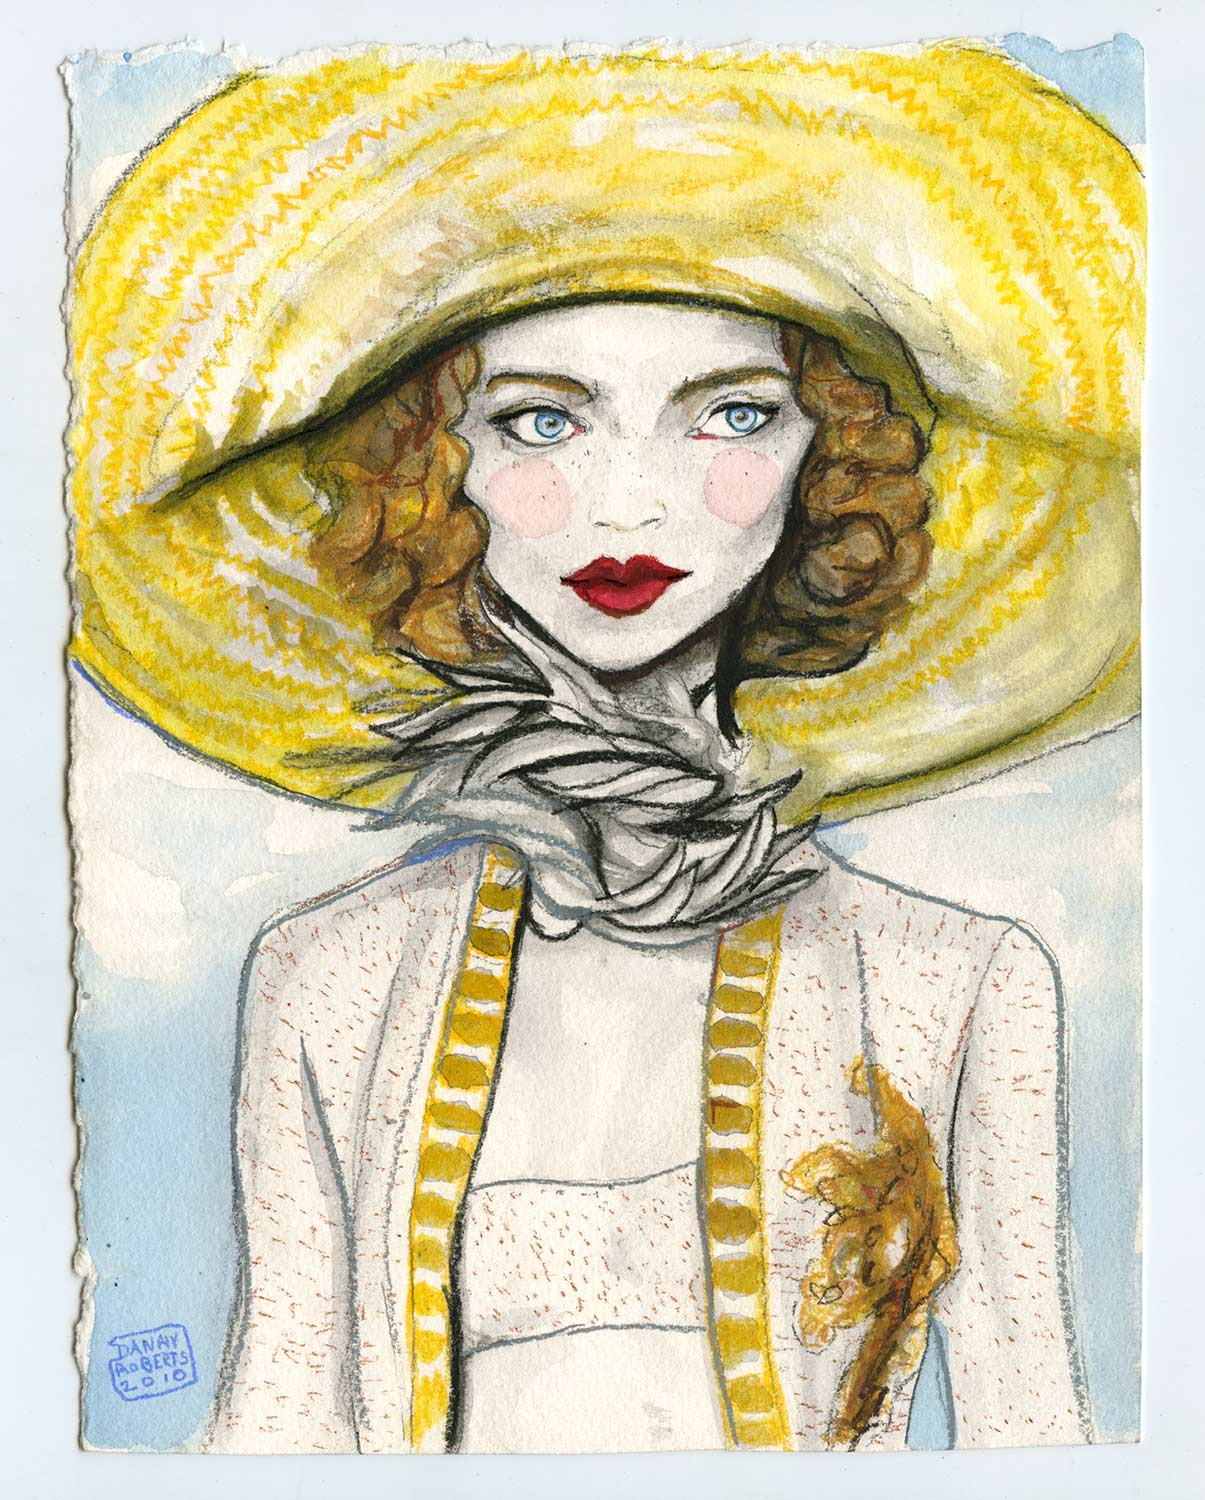 Water color painting was inspired by Marc Jacobs Spring 2011 Collection by Fashion illustrator Danny Roberts.